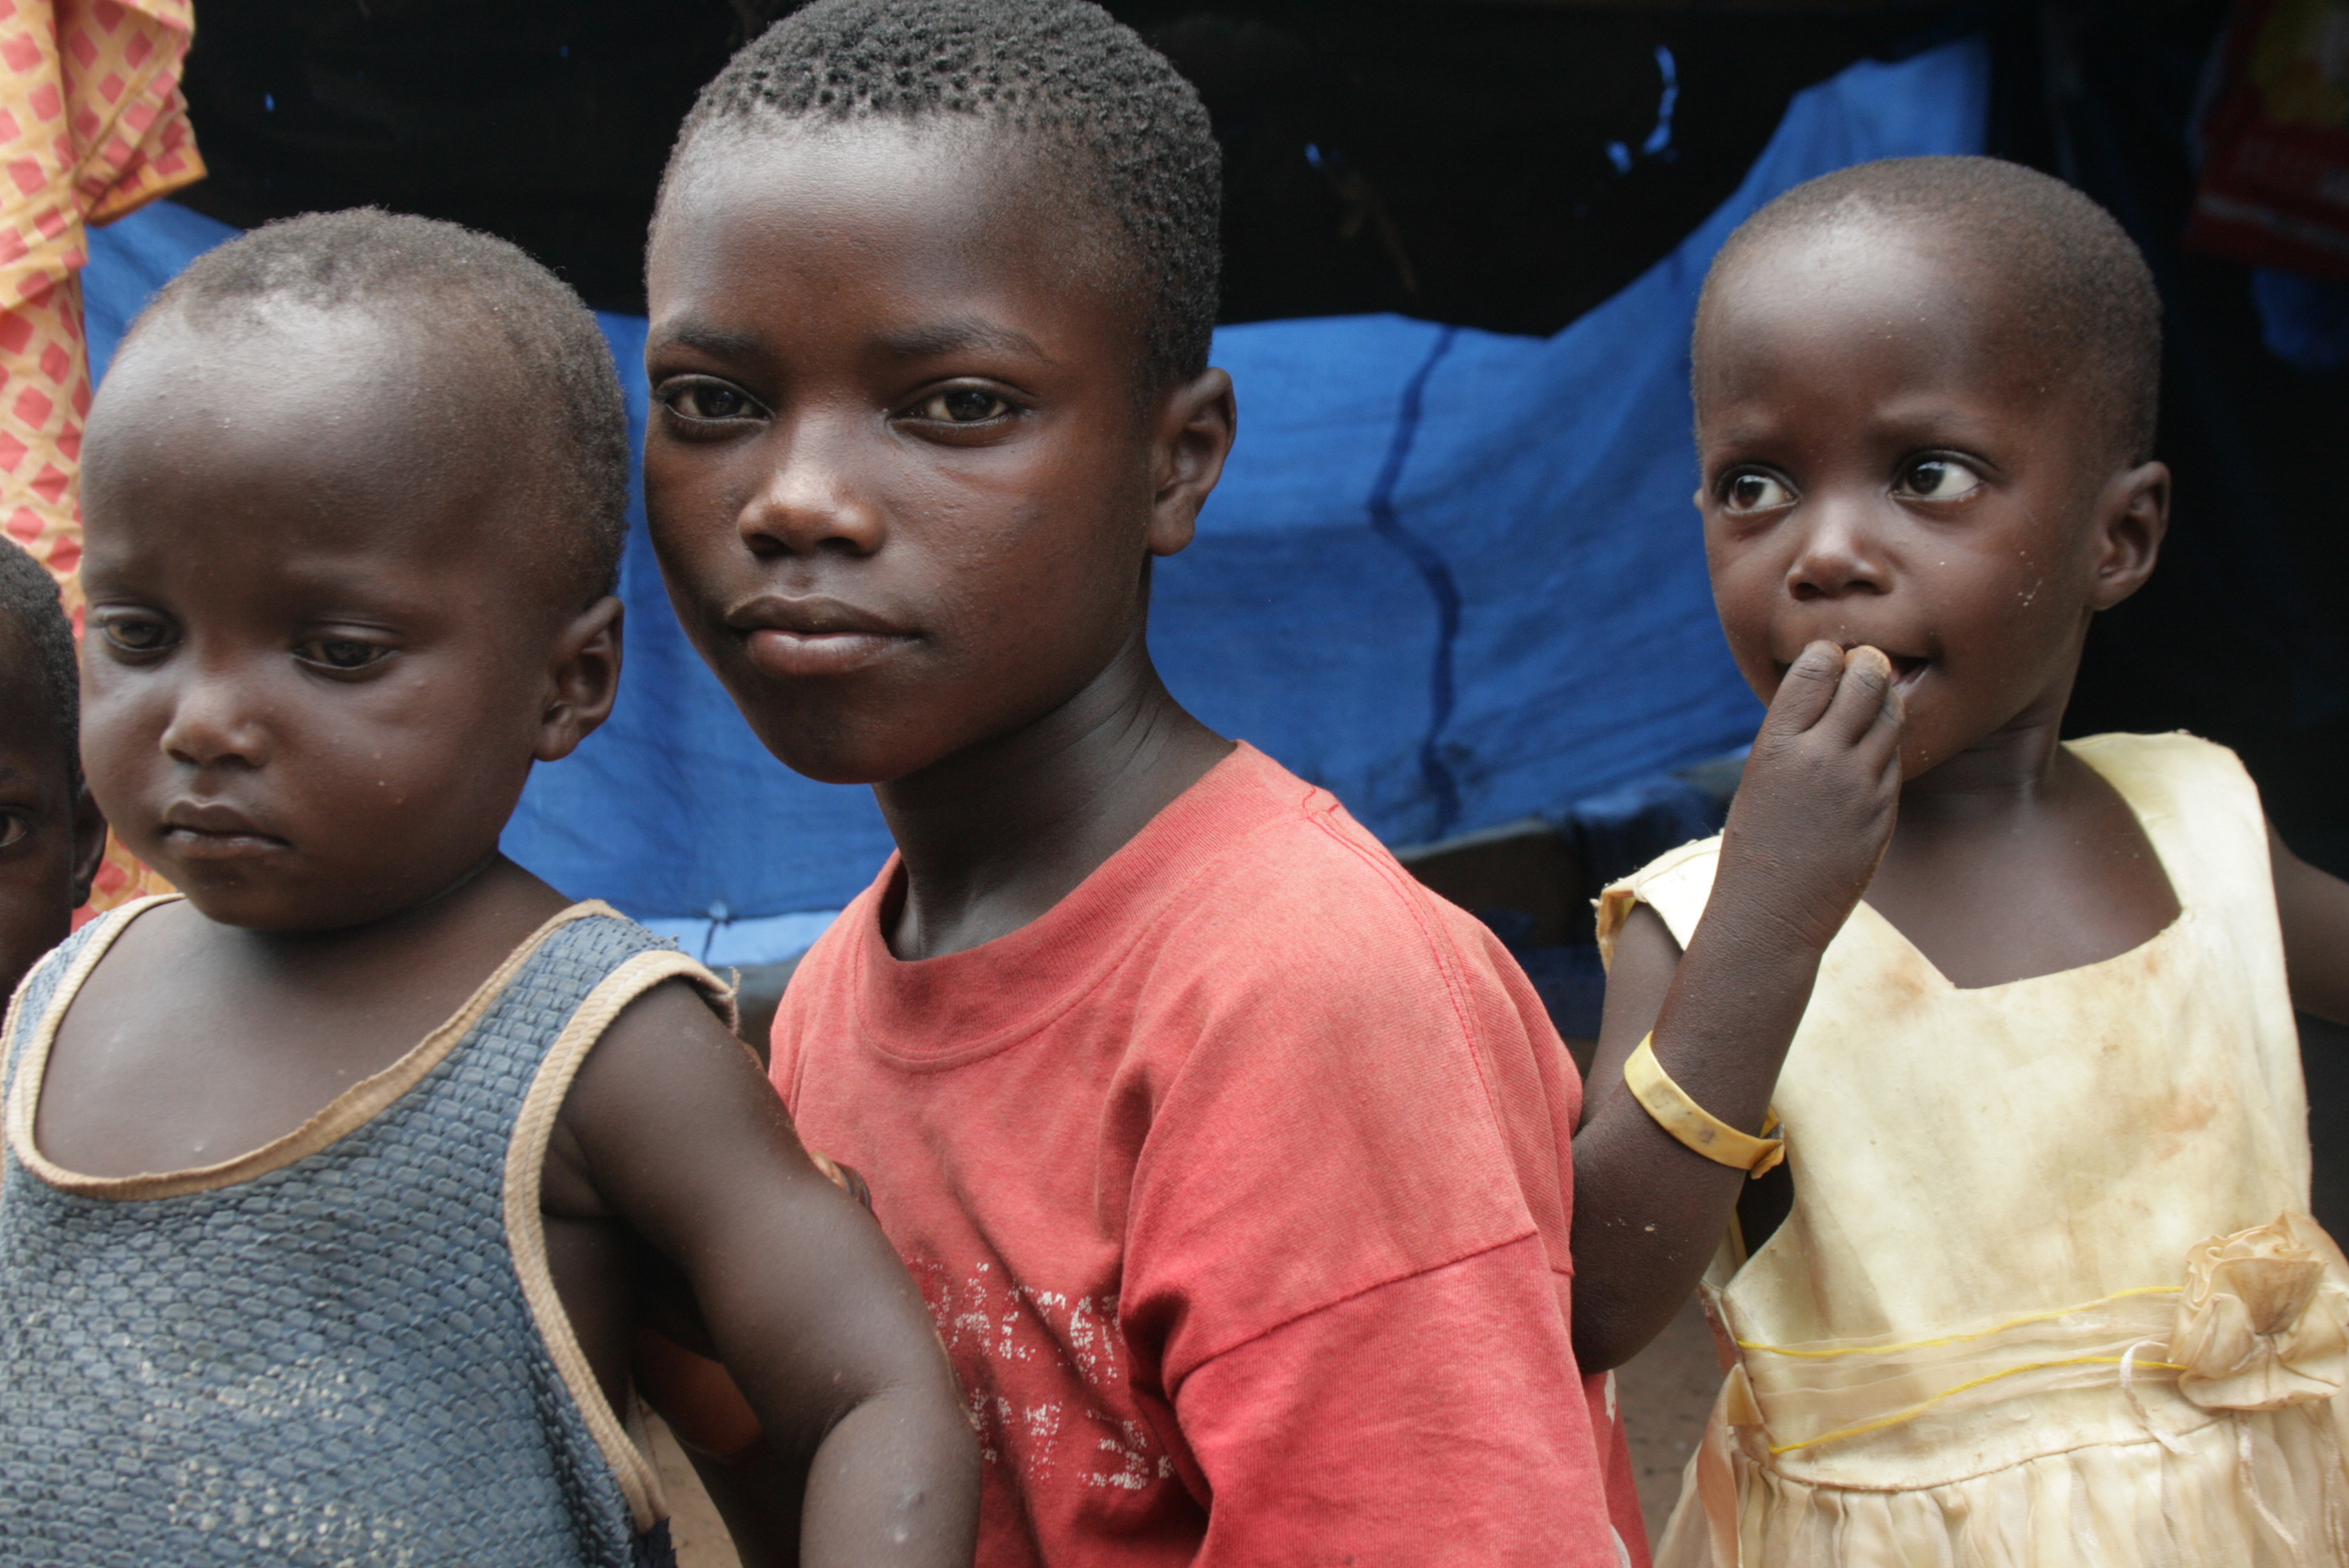 Displaced children at the Catholic mission site in Duékoué, western Côte d'Ivoire. April 2011